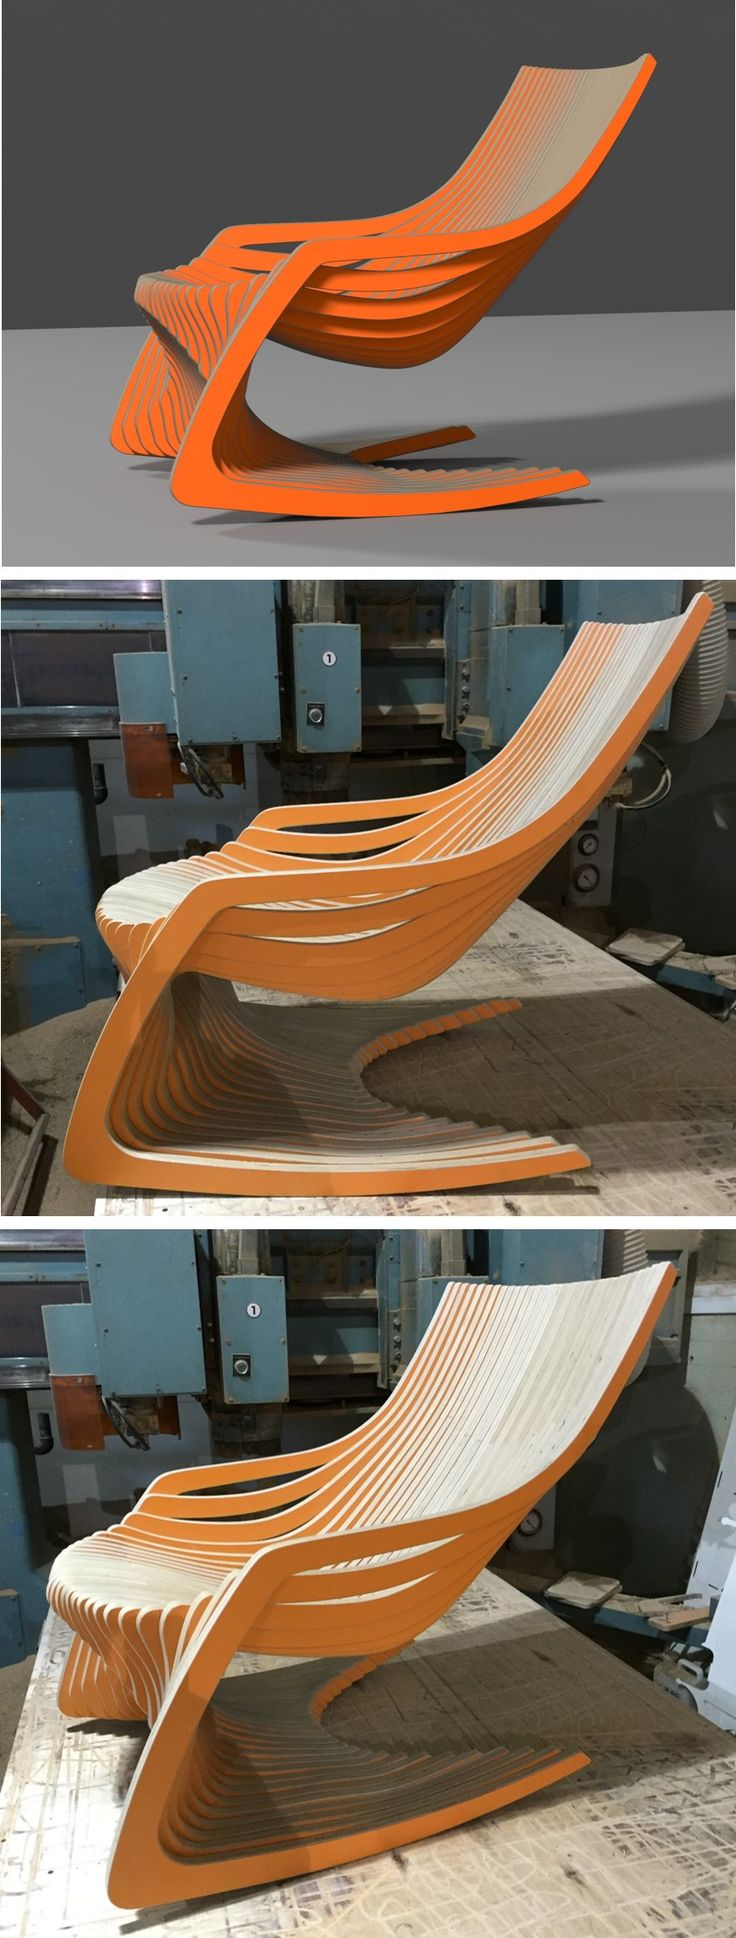 ROCKING CHAIR  / CNC ROUTER  / 3D DESIGN / PLYWOOD FURNITURE / www.joinxstudio.com                                                                                                                                                                                 More